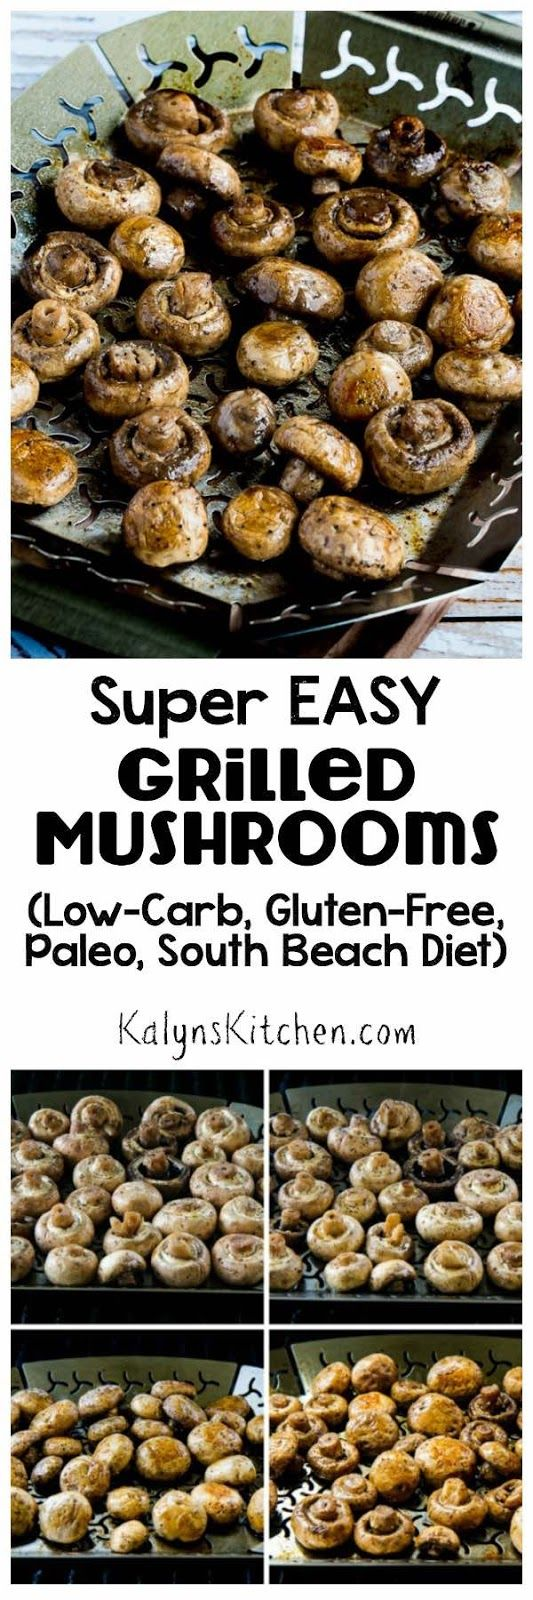 Super Easy Grilled Mushrooms | Summer, Beaches and South ...